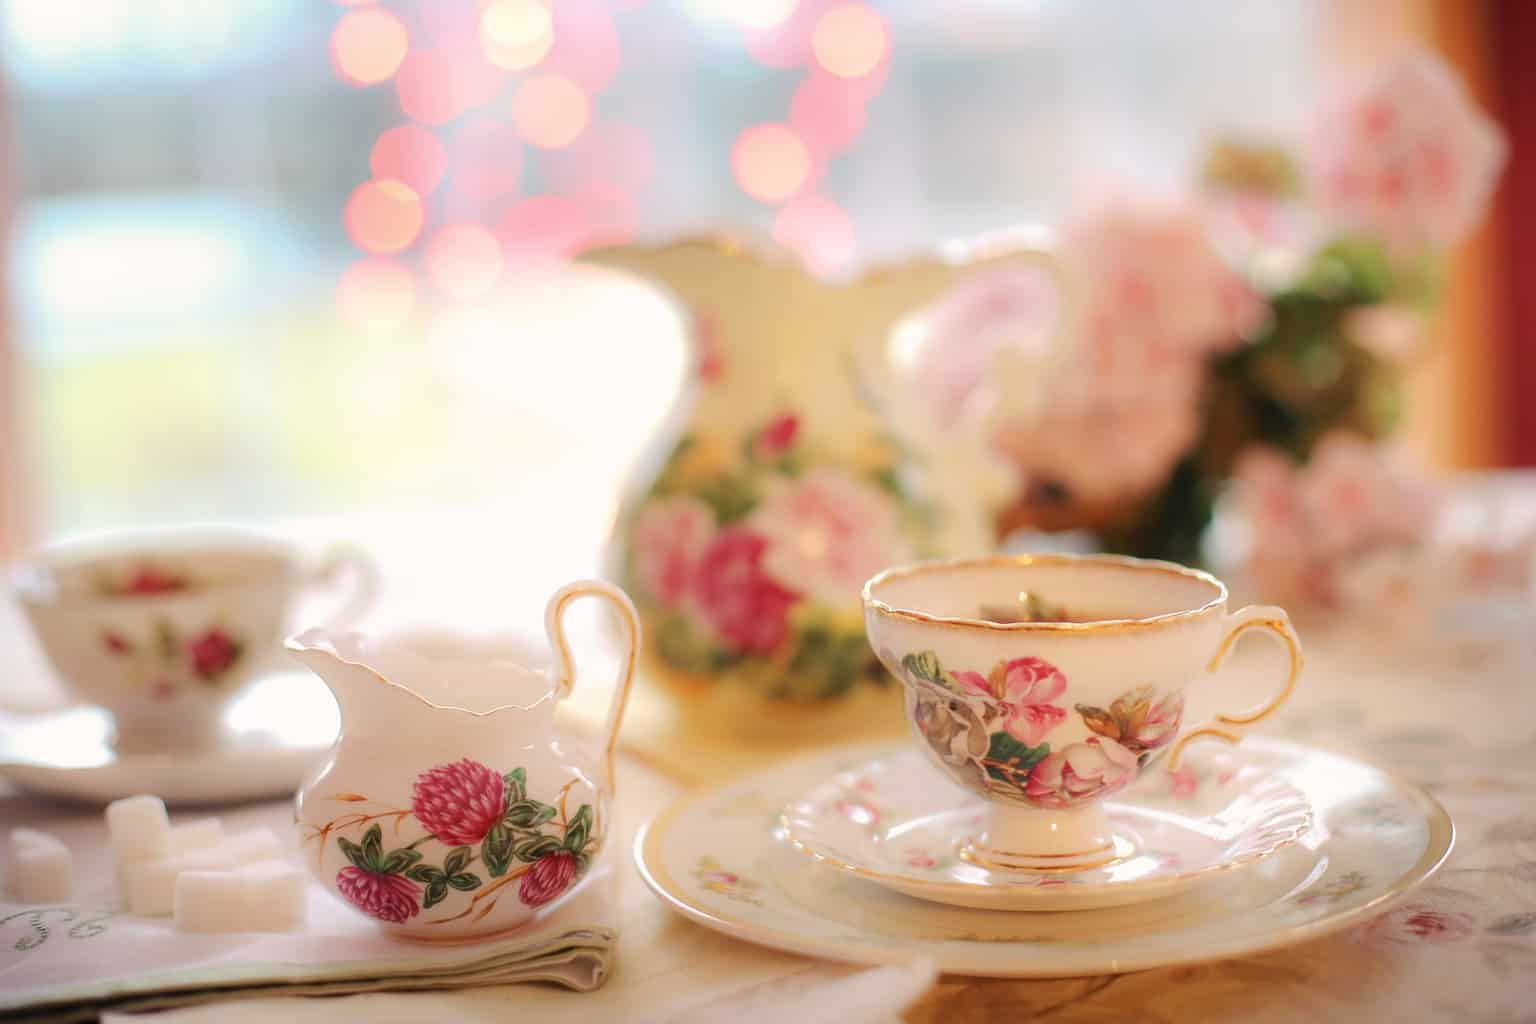 Flowery tea pot and tea cups